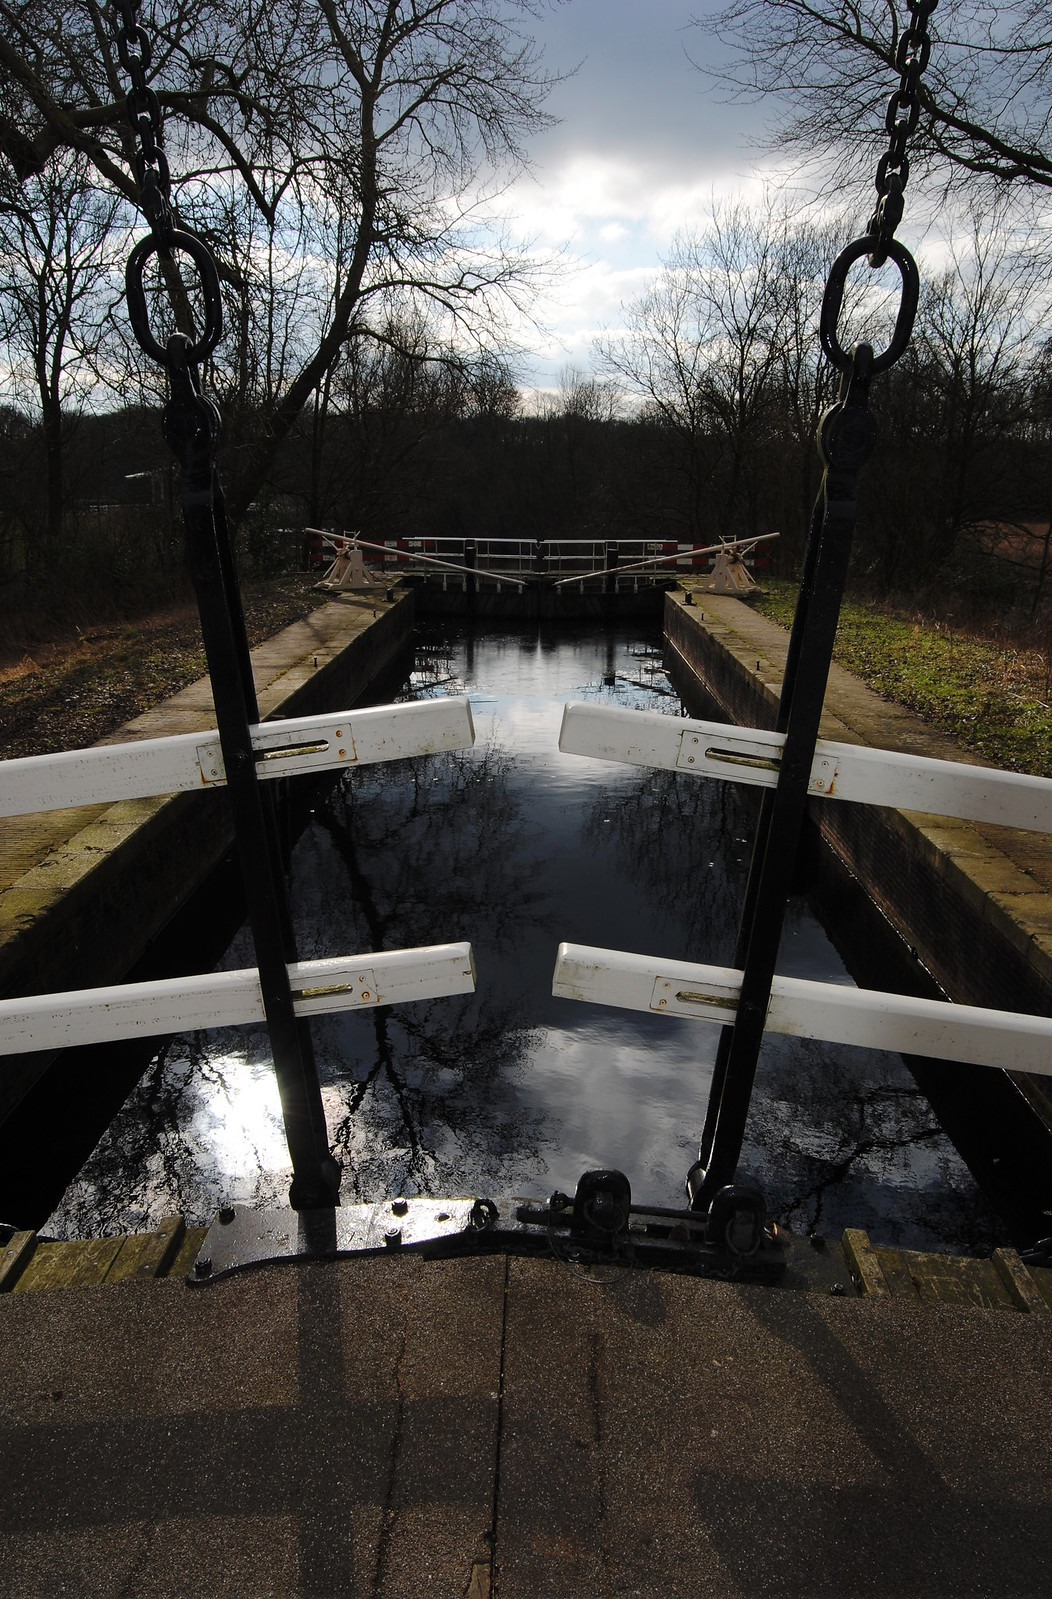 A traditional bridge and water lock in the Amsterdamse Bos.